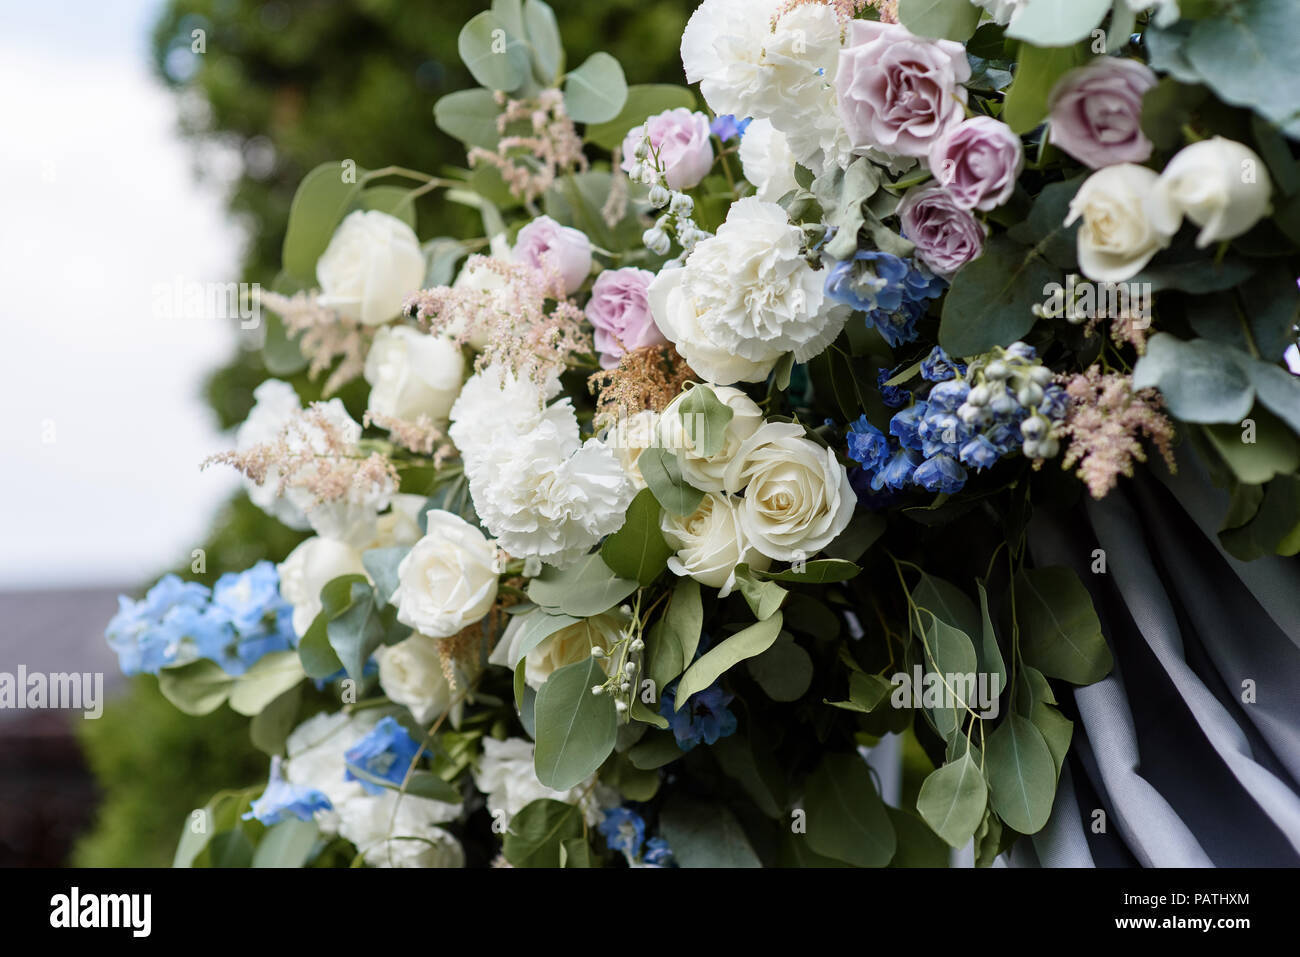 It is a lot of beautiful flowers and roses stock photo 213211900 it is a lot of beautiful flowers and roses izmirmasajfo